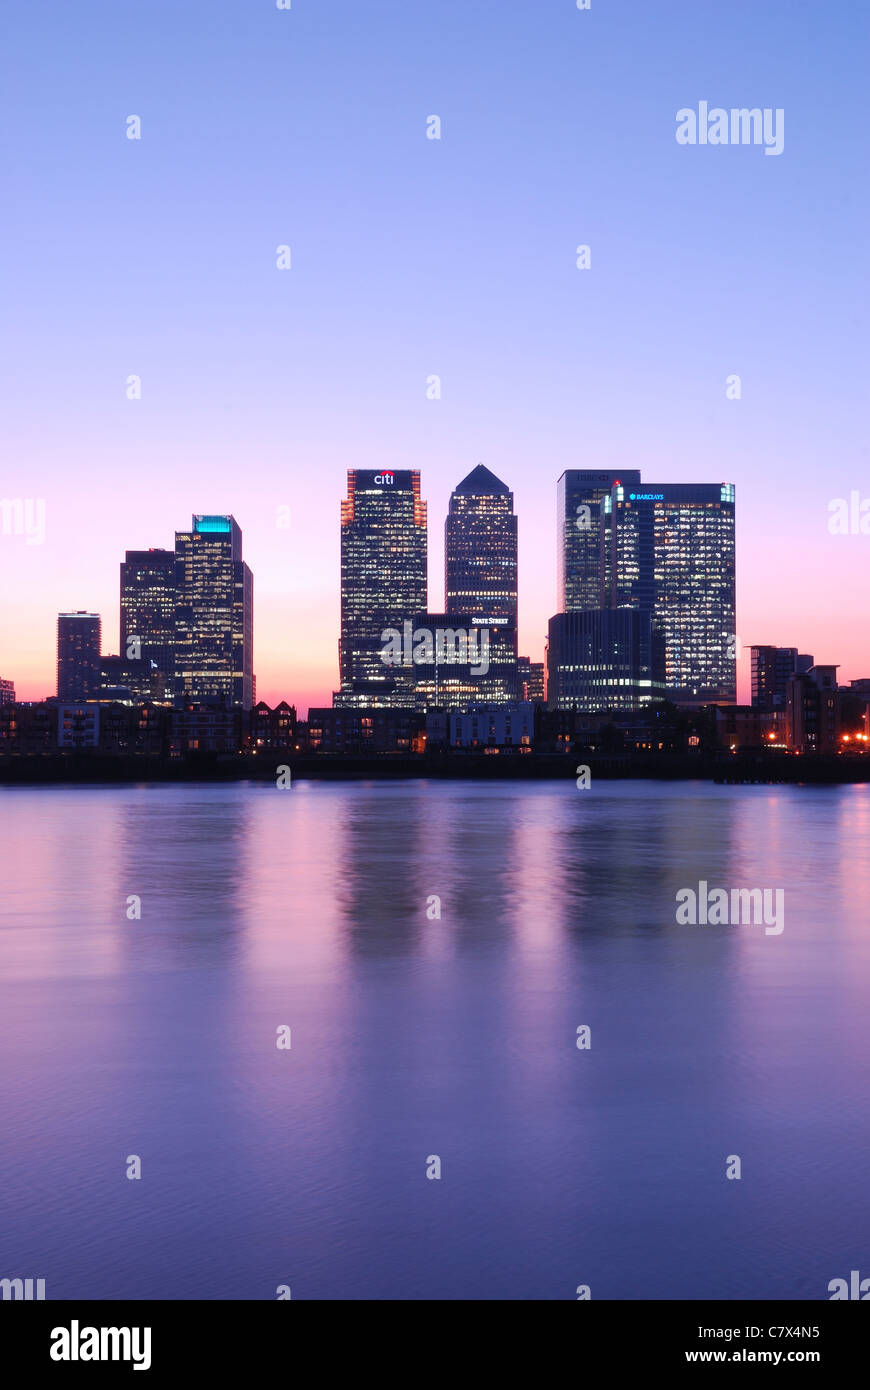 Canary wharf at twilight - Stock Image